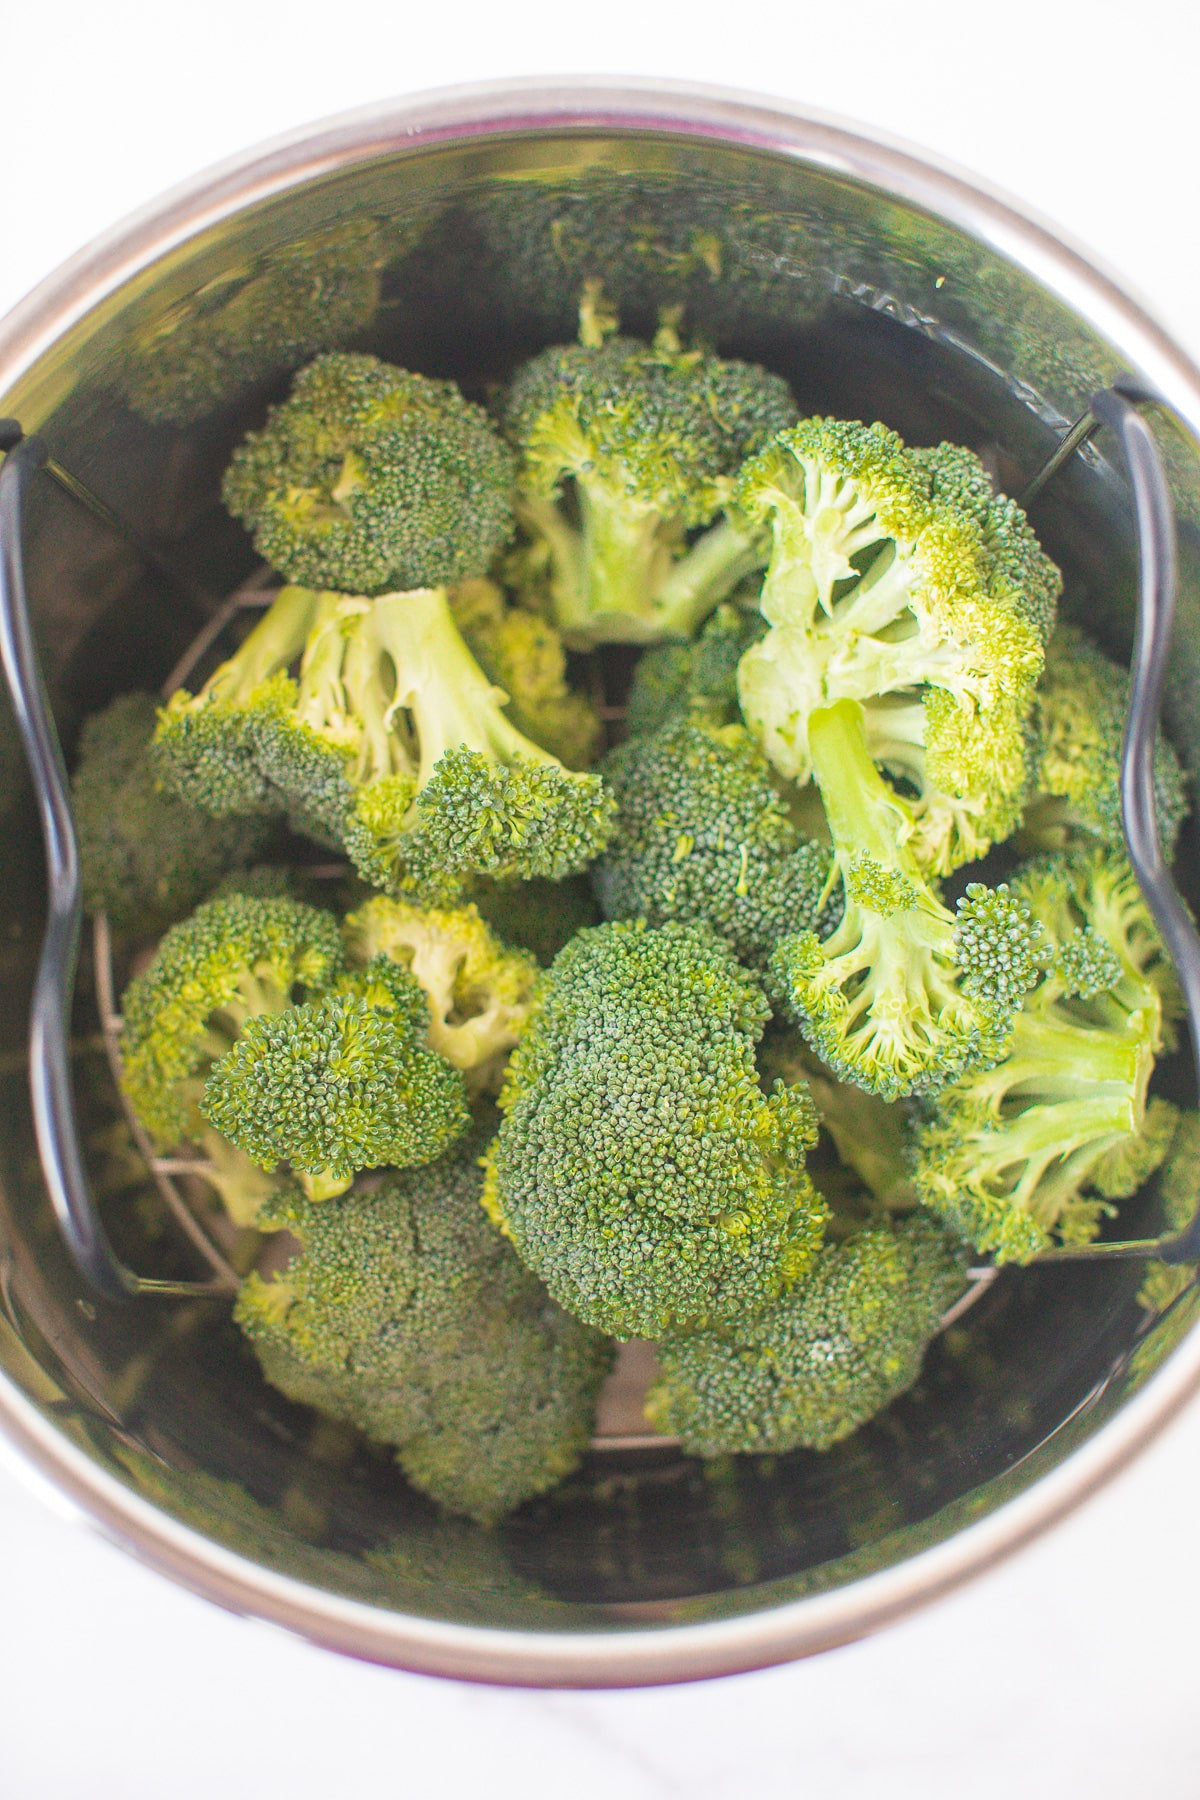 broccoli florets in an instant pot pressure cooker